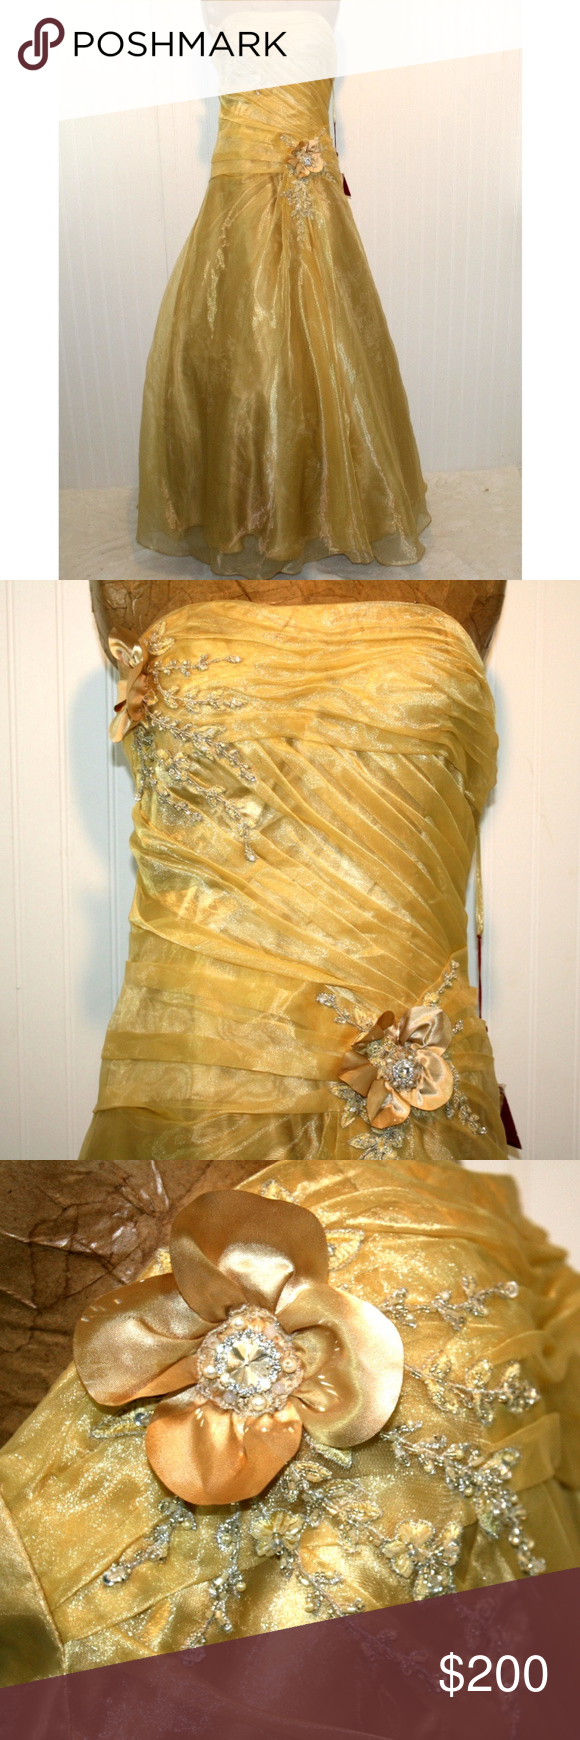 Nwt may queen couture gold size ball gown prom nwt in my